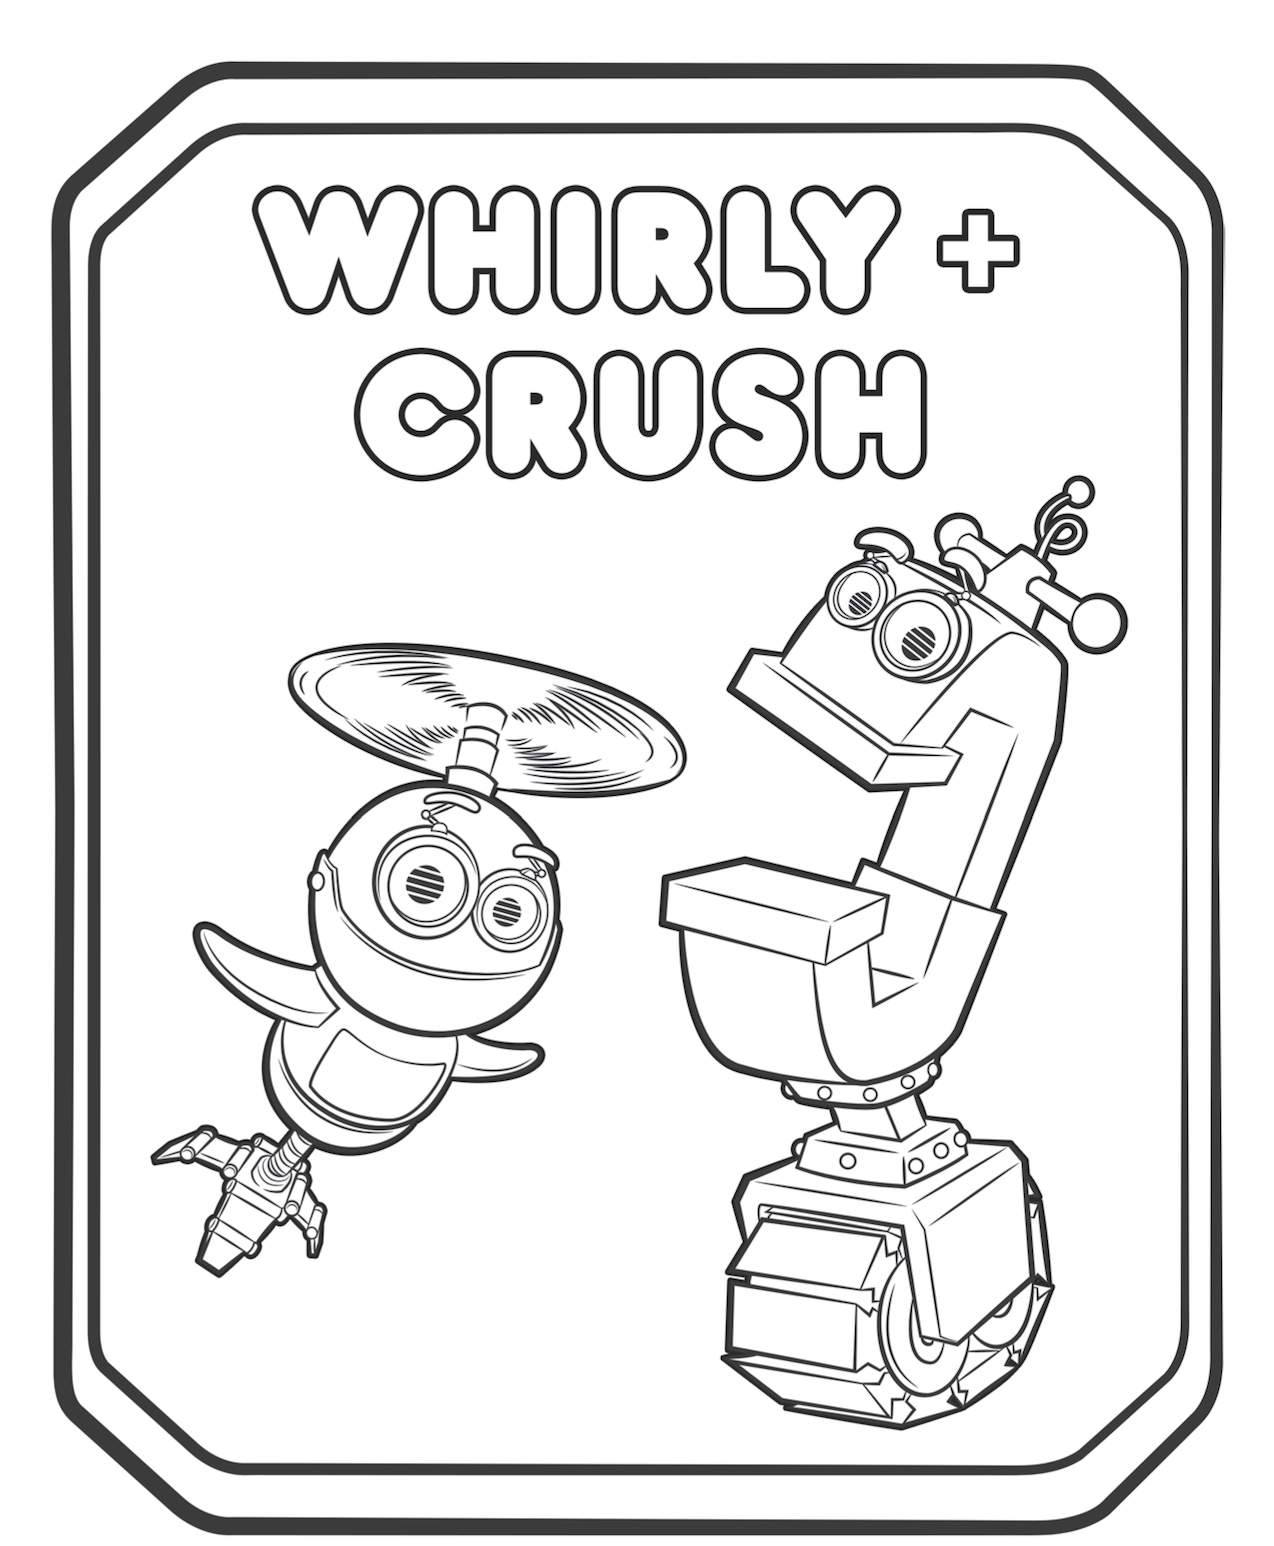 90589058345 Rusty Rivets Whirly and Crush Coloring Pages e1543891076110